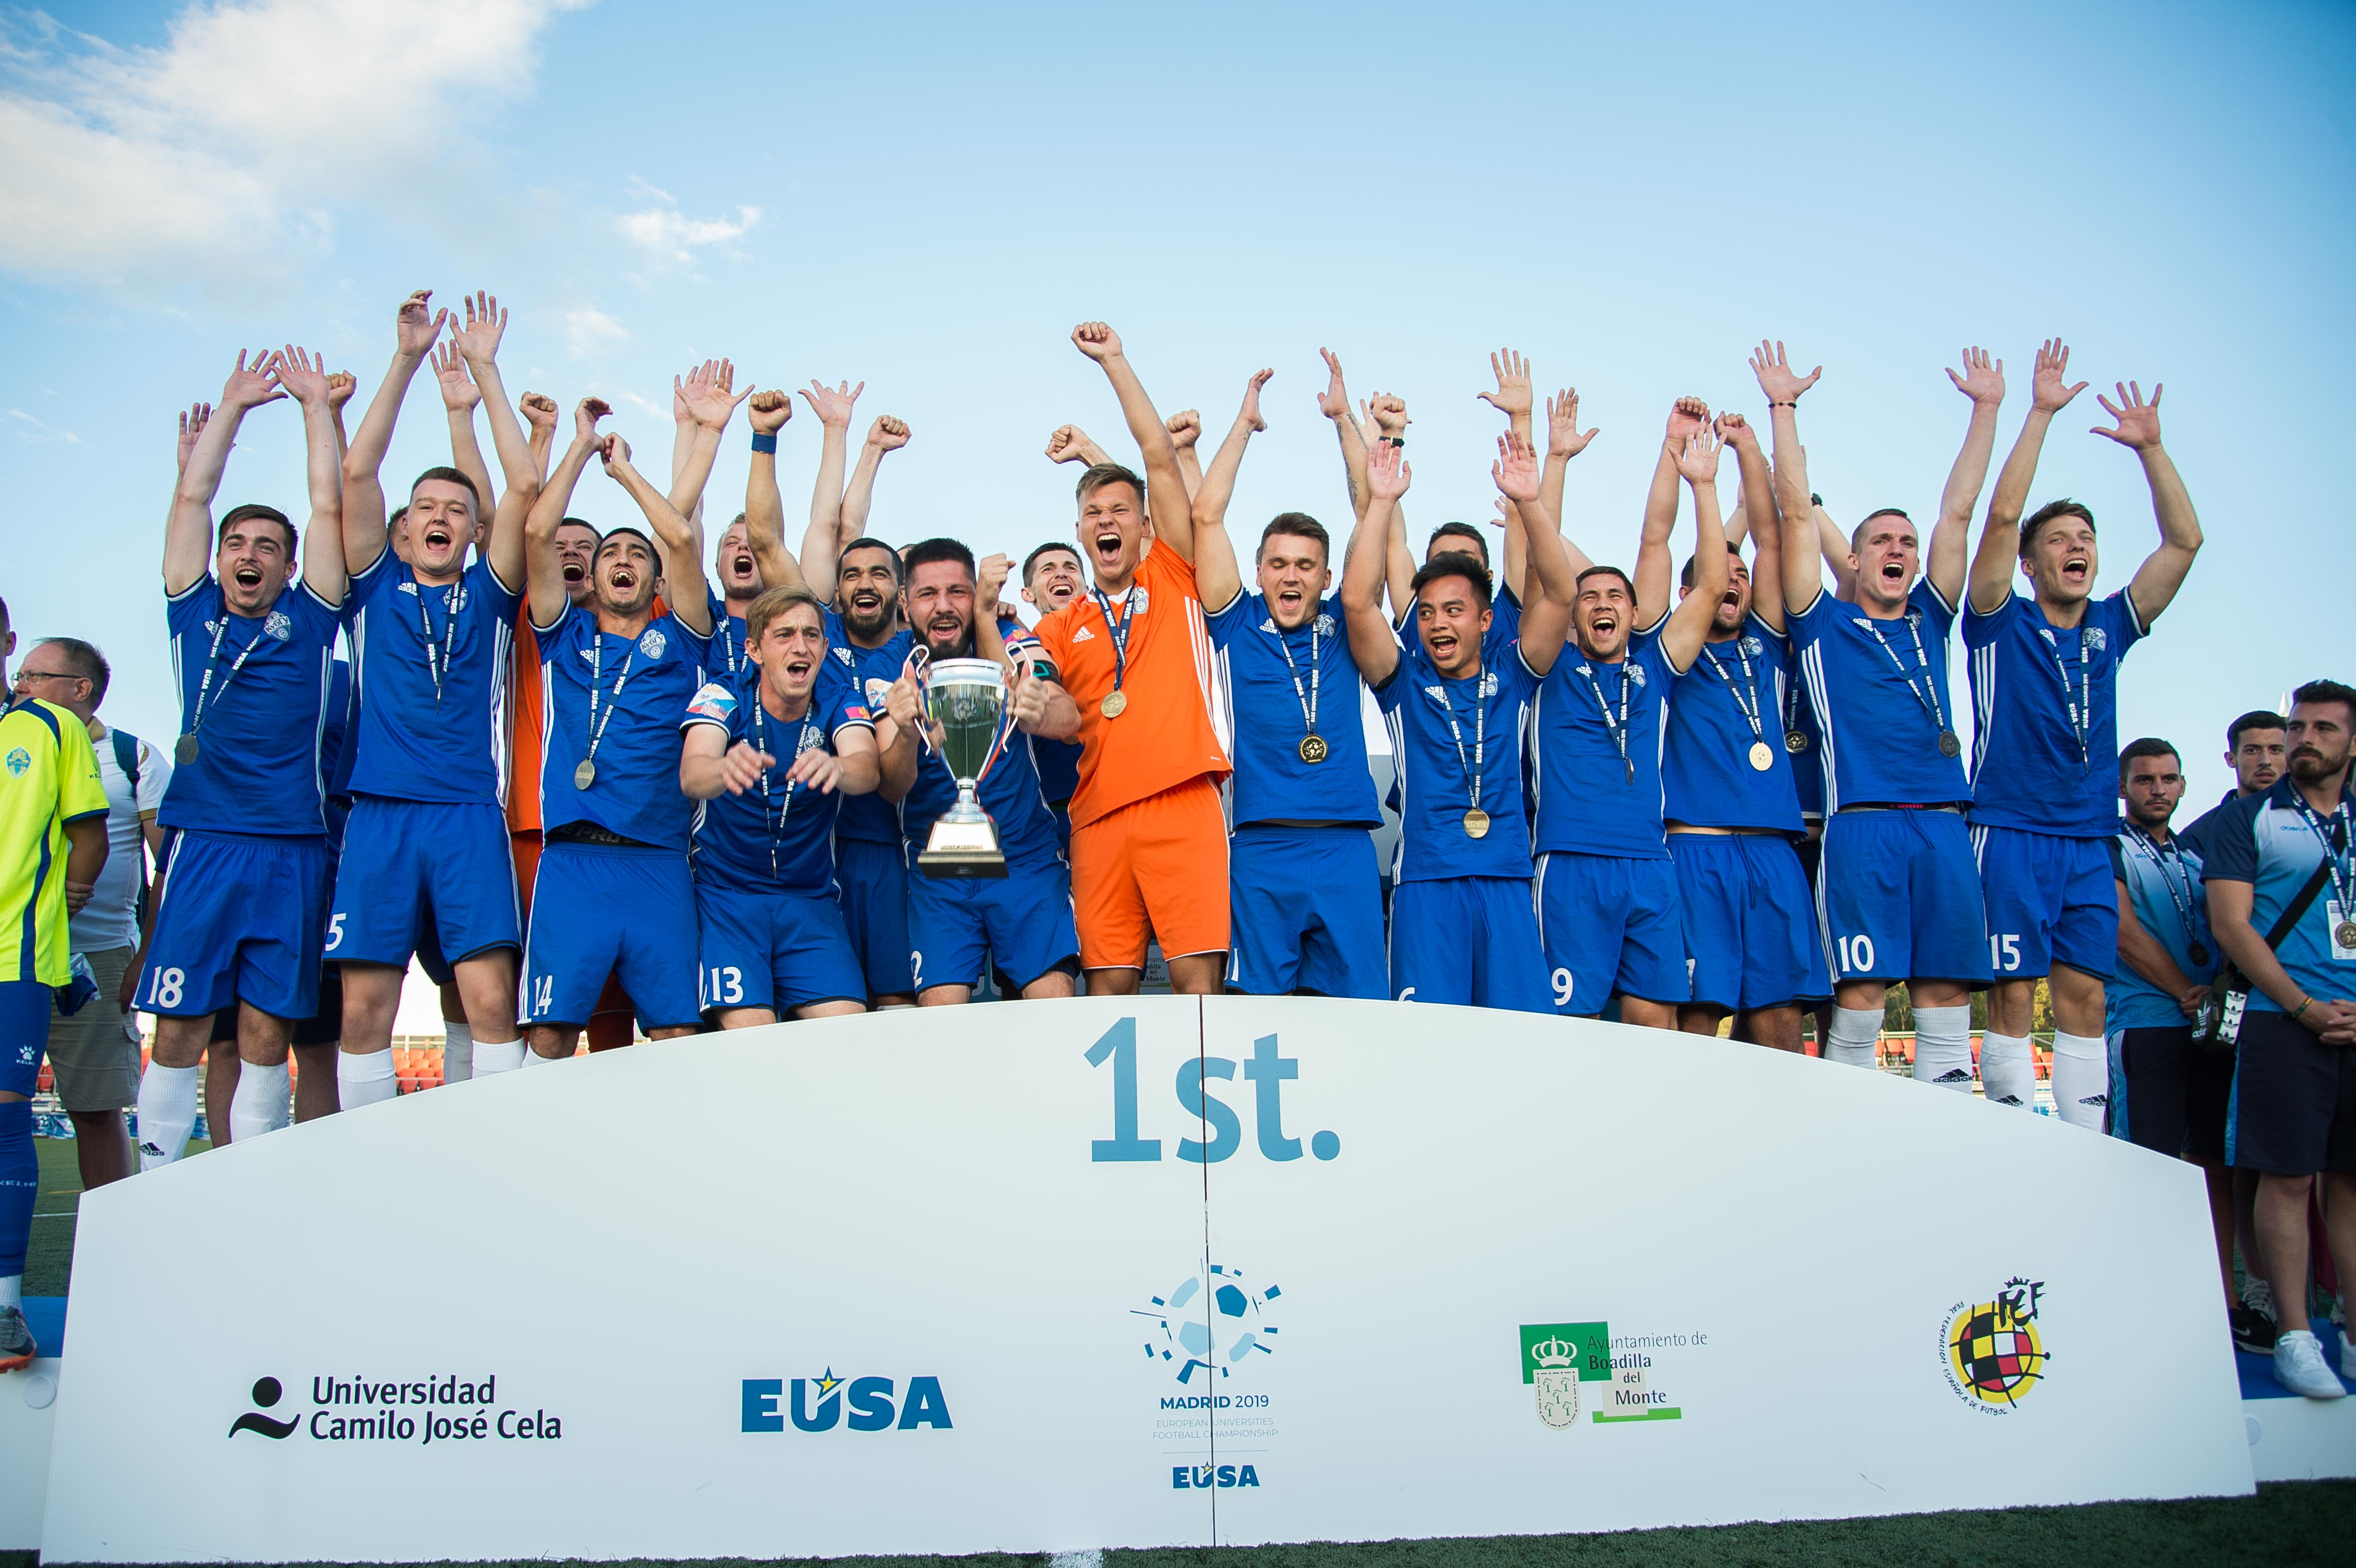 EUC 2019 Football men's winners